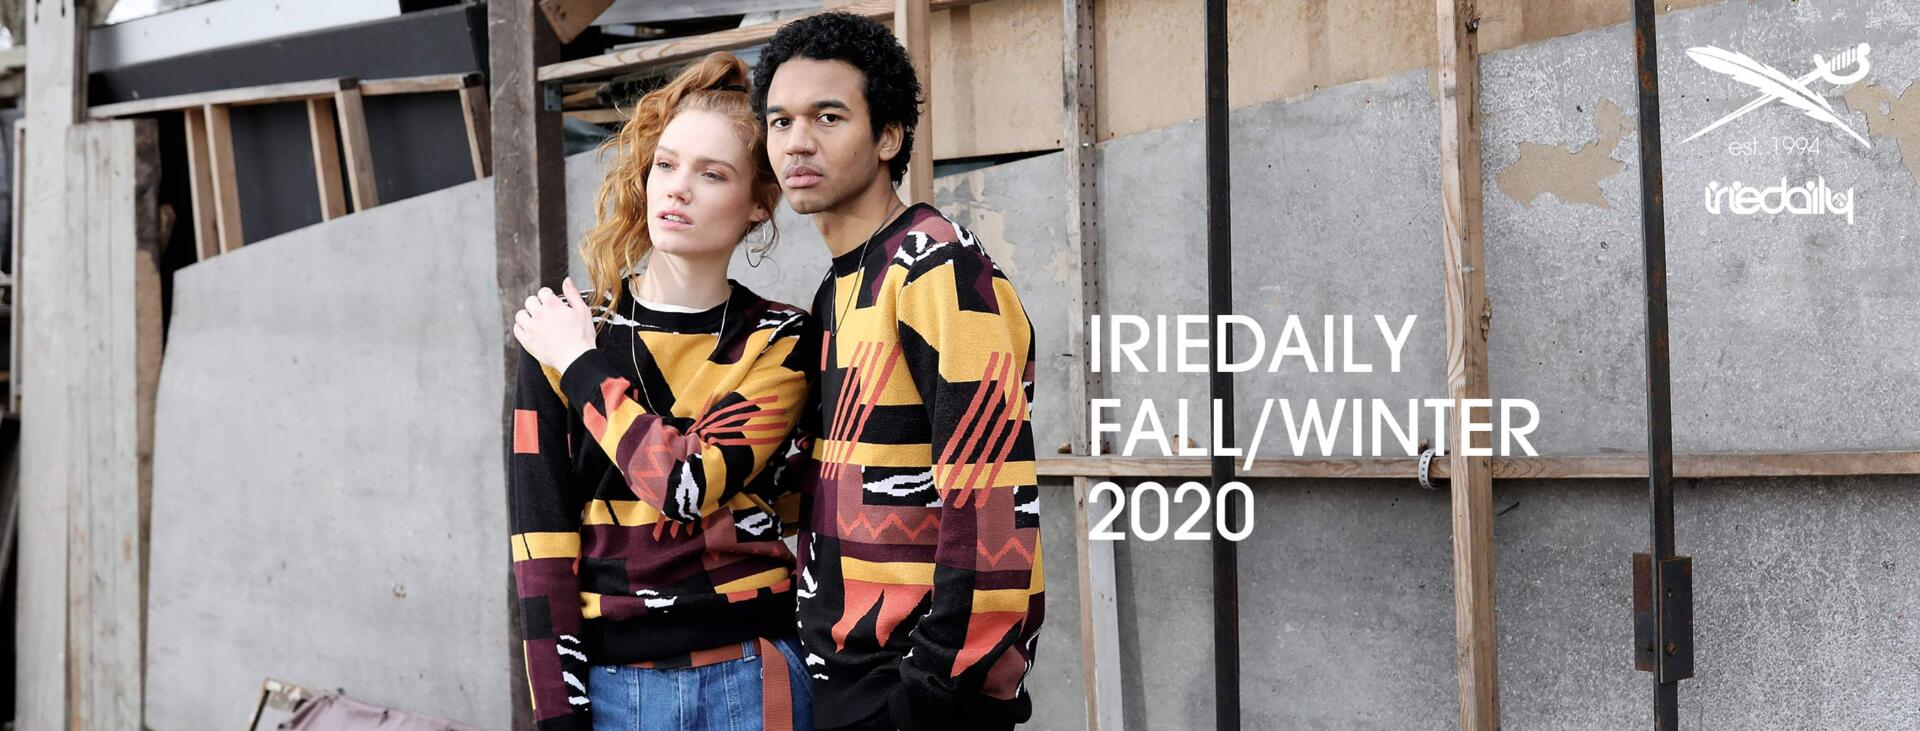 IRIEDAILY Fall/Winter 2020 Kollektion